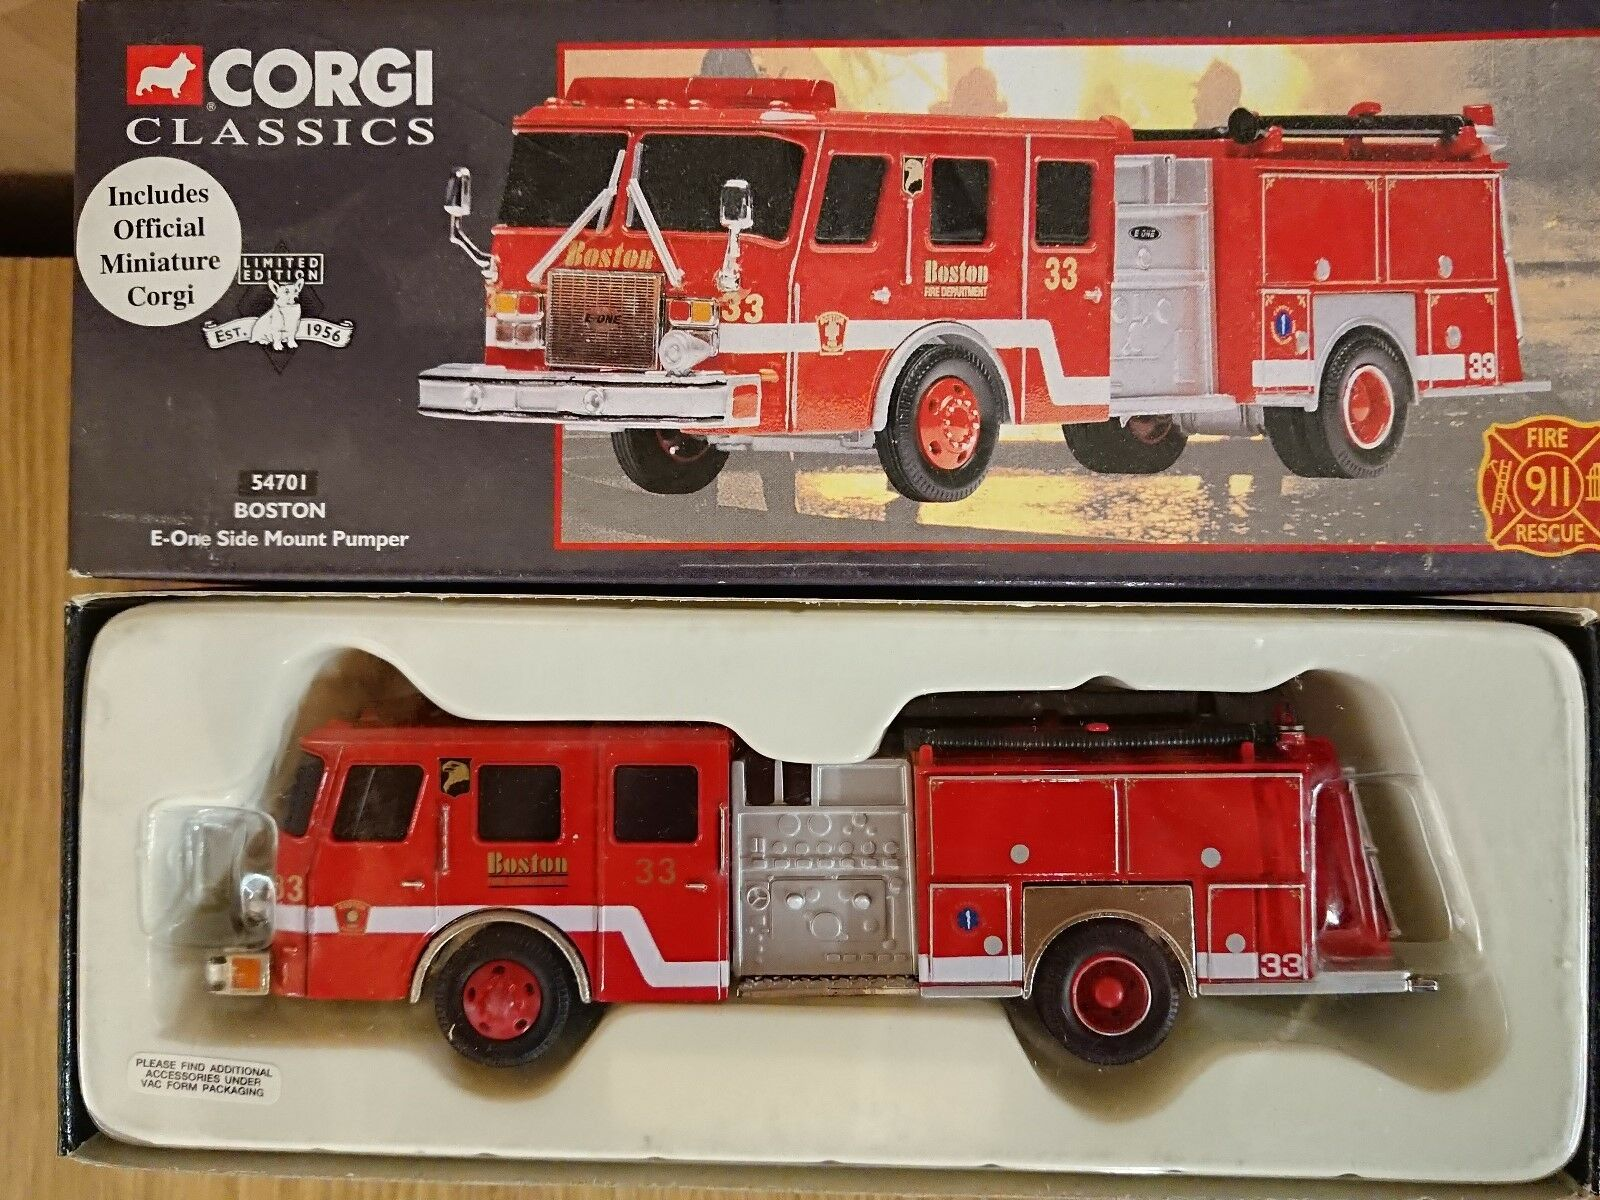 Corgi Classics 54701 E-One Side Mount Pumper Boston Ltd Edition No. 0001 of 5000